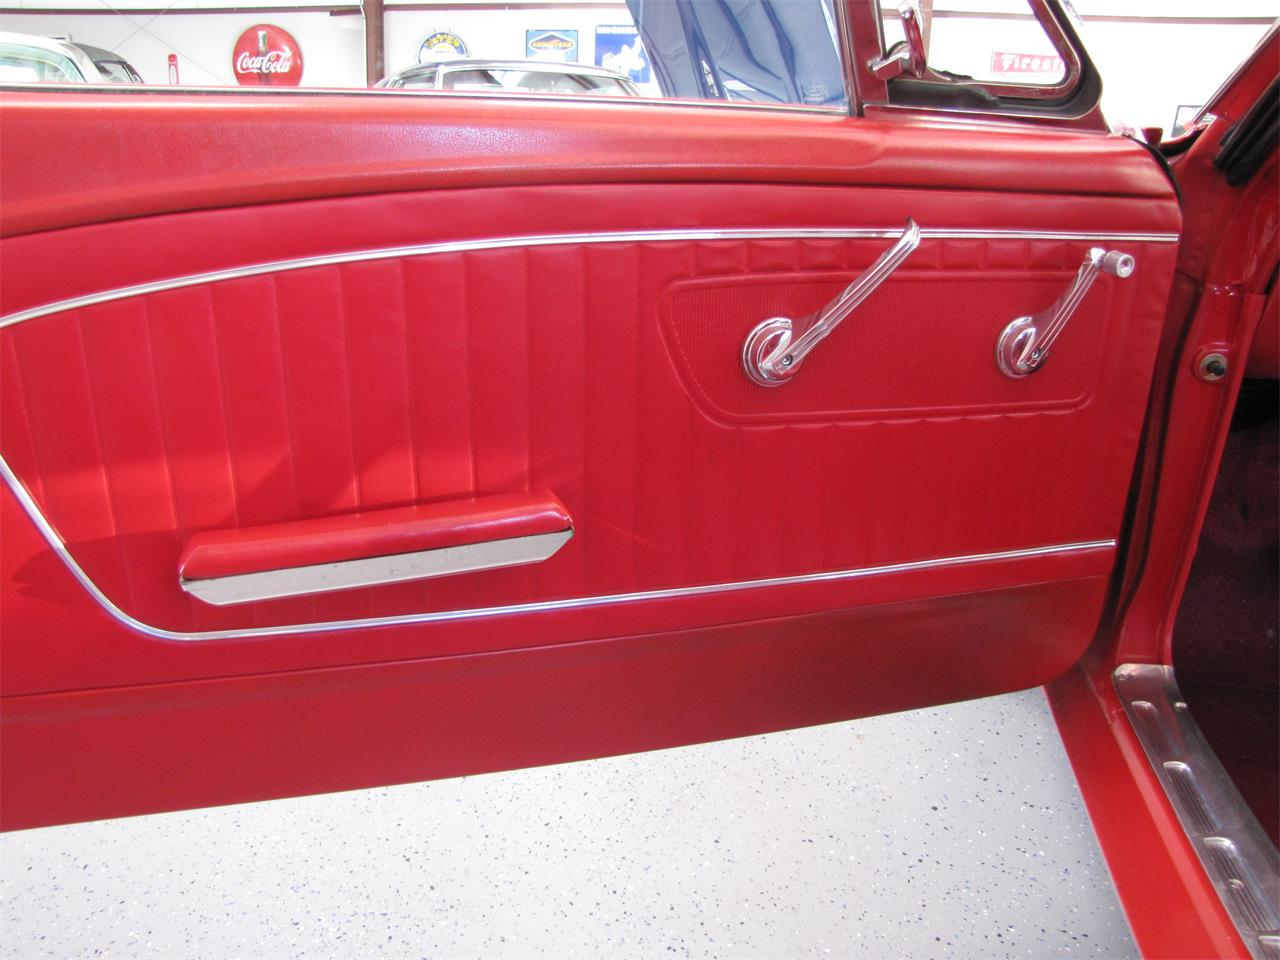 Large Picture of Classic 1965 Mustang located in Granite Bay California - $23,500.00 - Q6BT